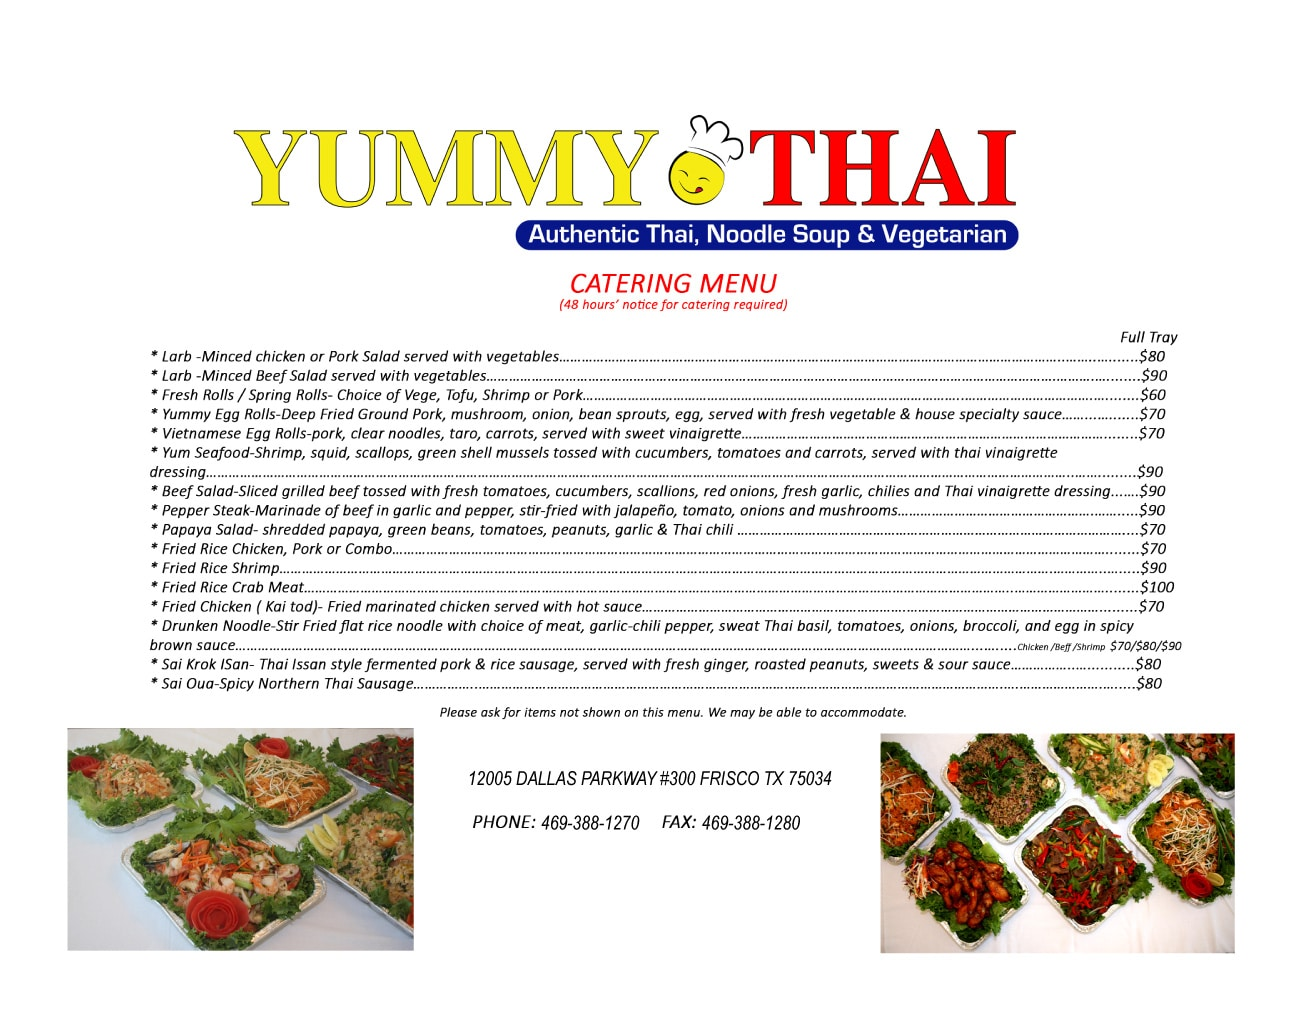 Yummy Thai Coppell Catering Menu List2